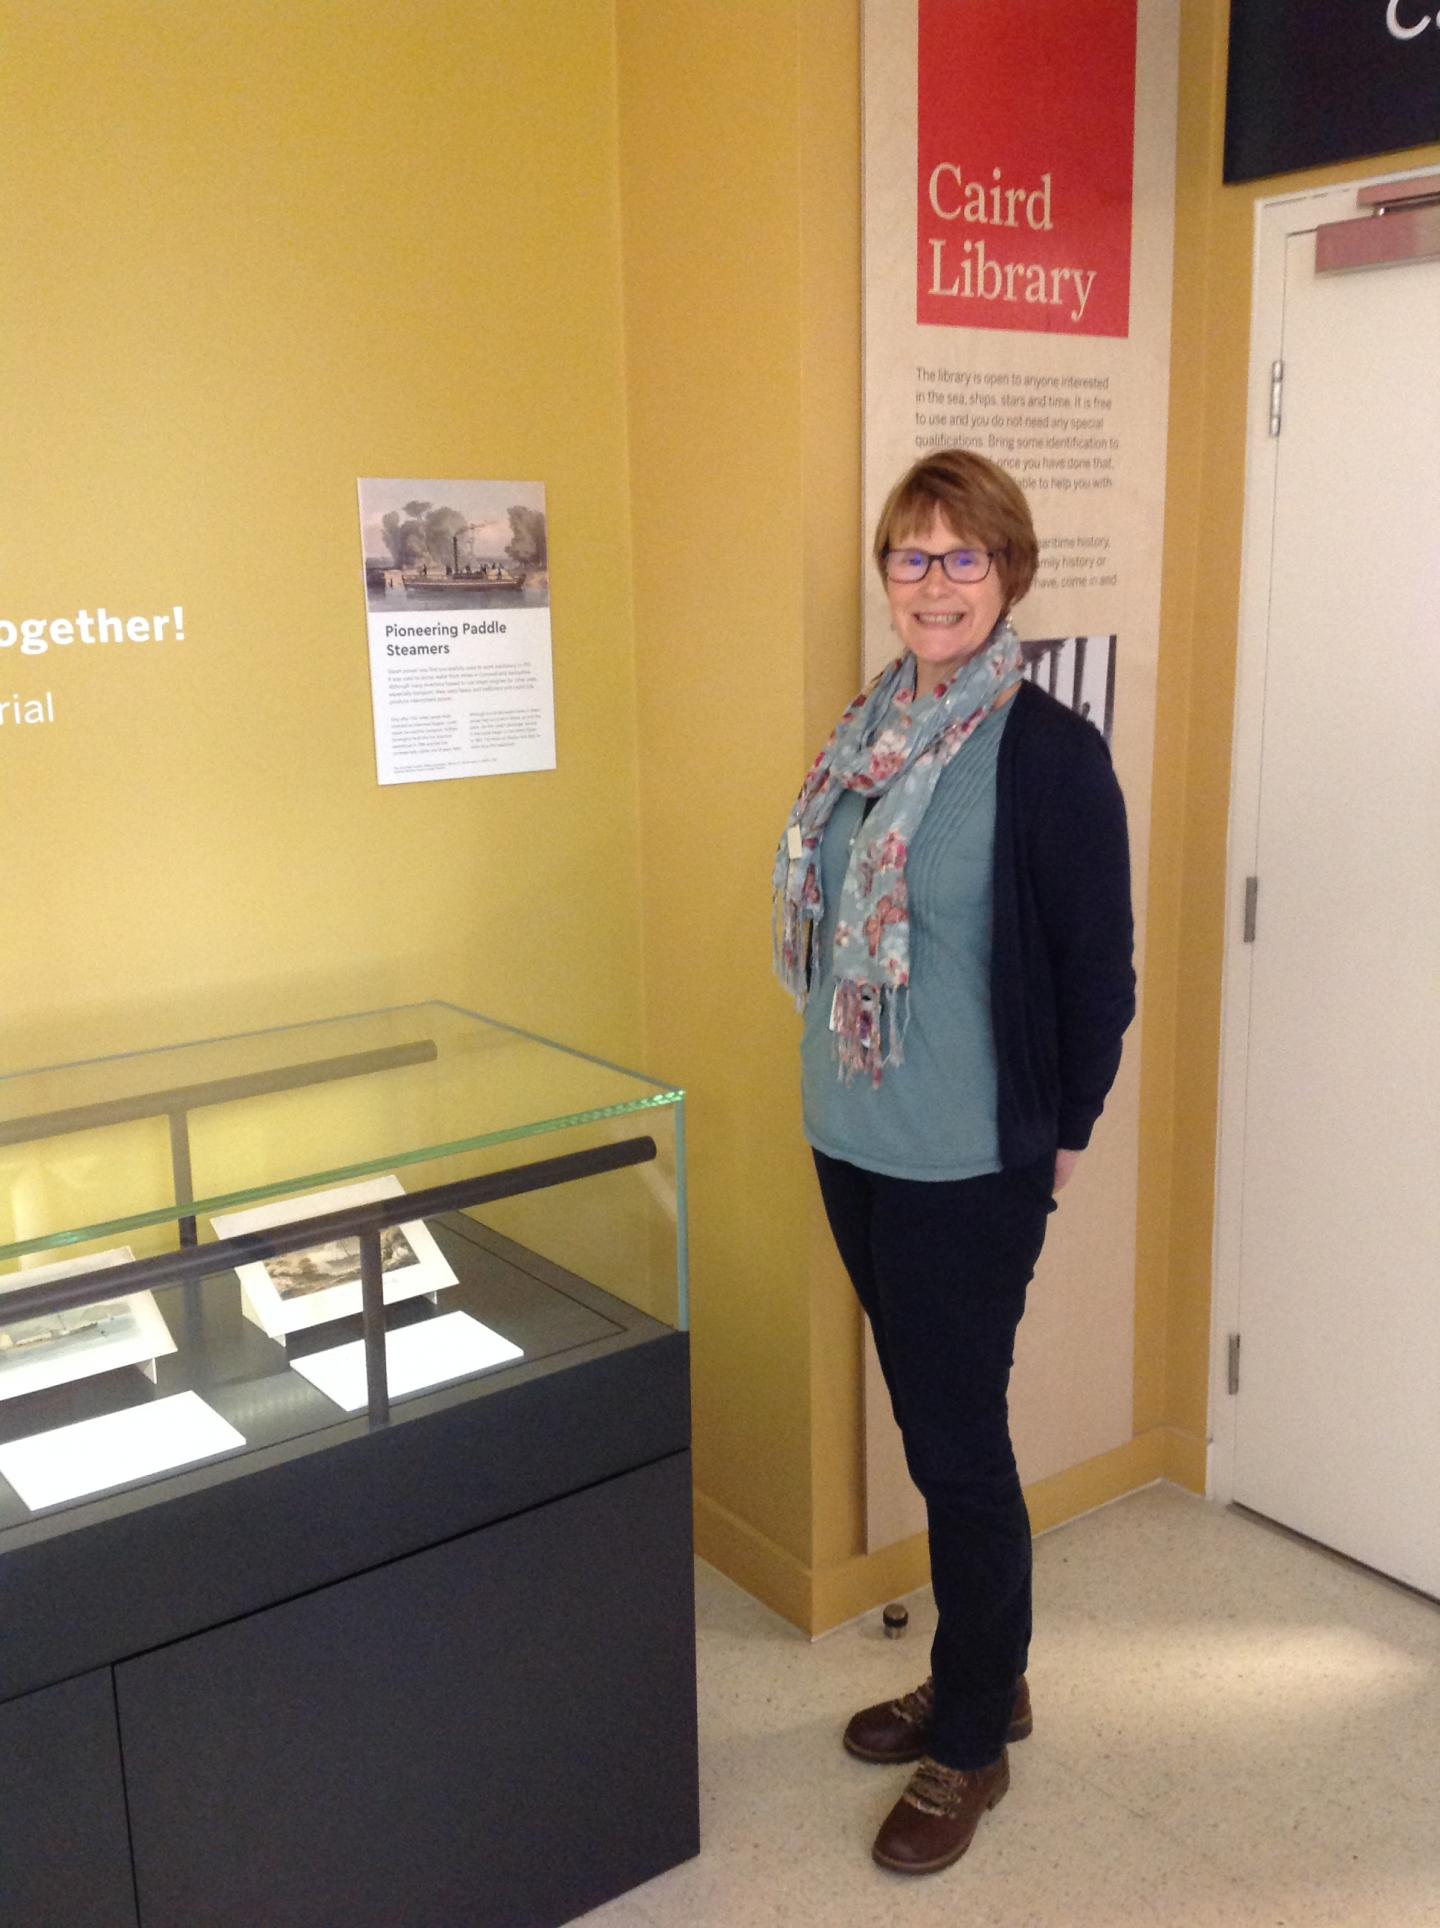 Jenny Collett by the Caird Library display case